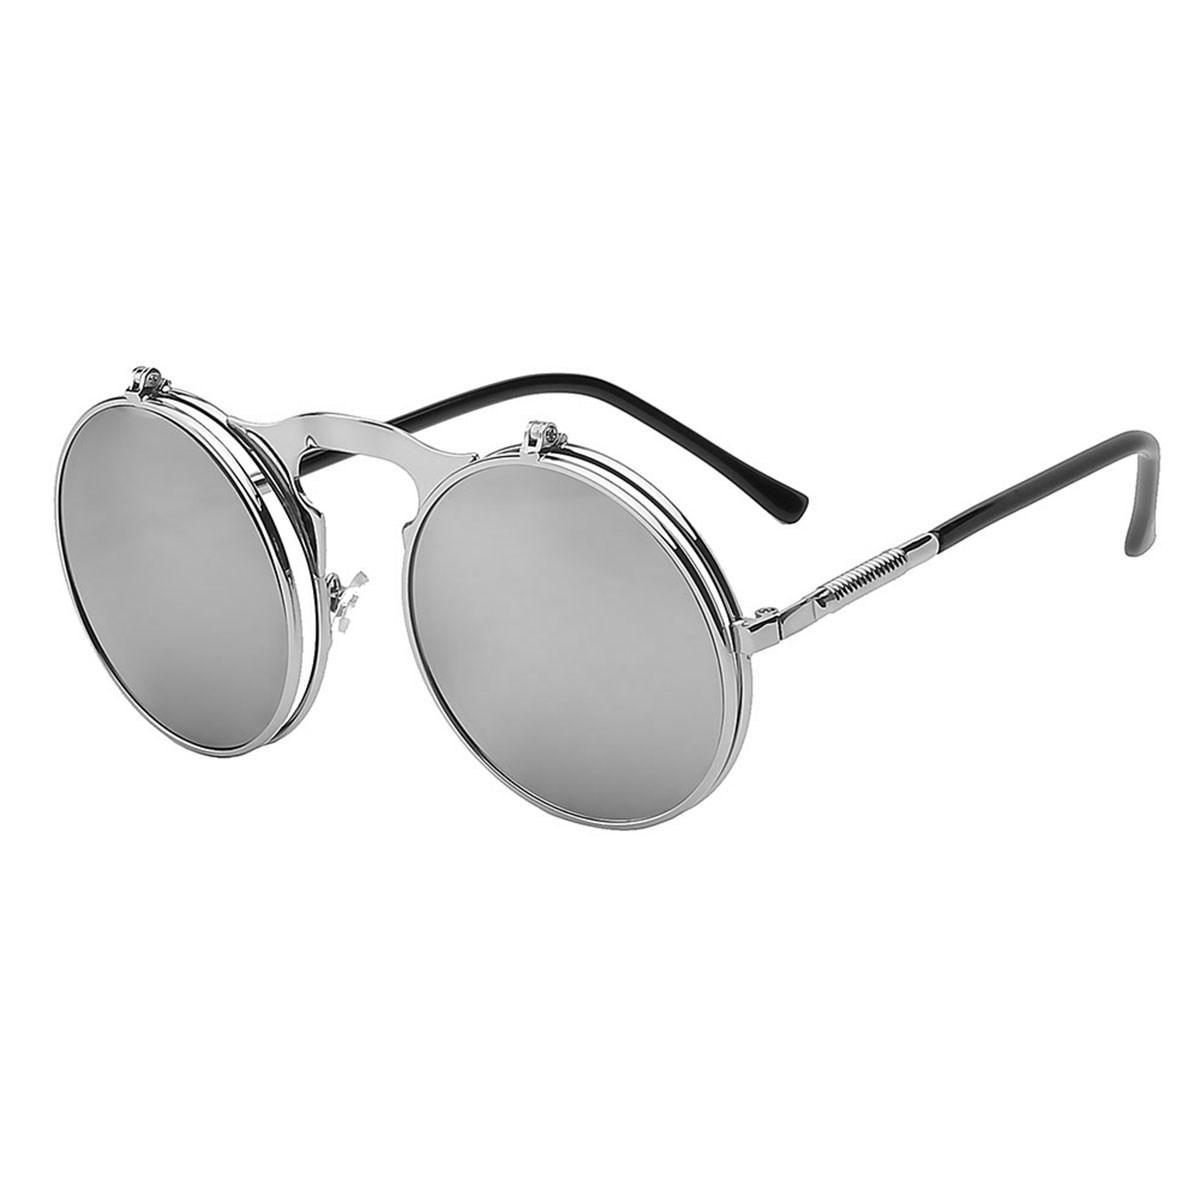 Flip Up Steampunk Sunglasses UV 400 Protection Round Shaped Vintage Sunglass Fashion Cool Stylish Sunglasses Silver